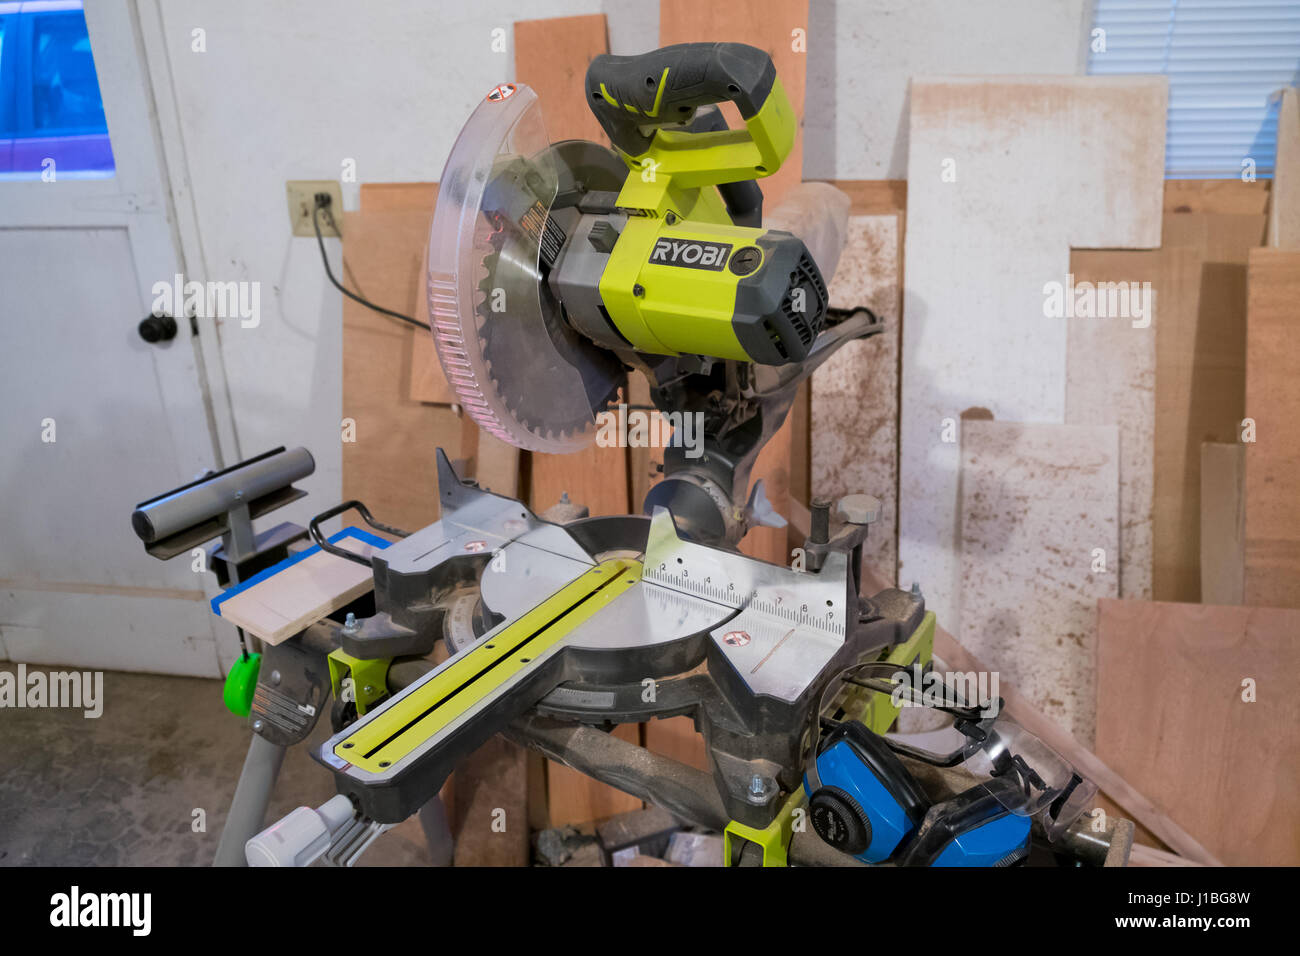 SPRINGFIELD, OR - JANUARY 31, 2017: Ryobi compound miter saw in a cutting shop during a major house renovation construction - Stock Image